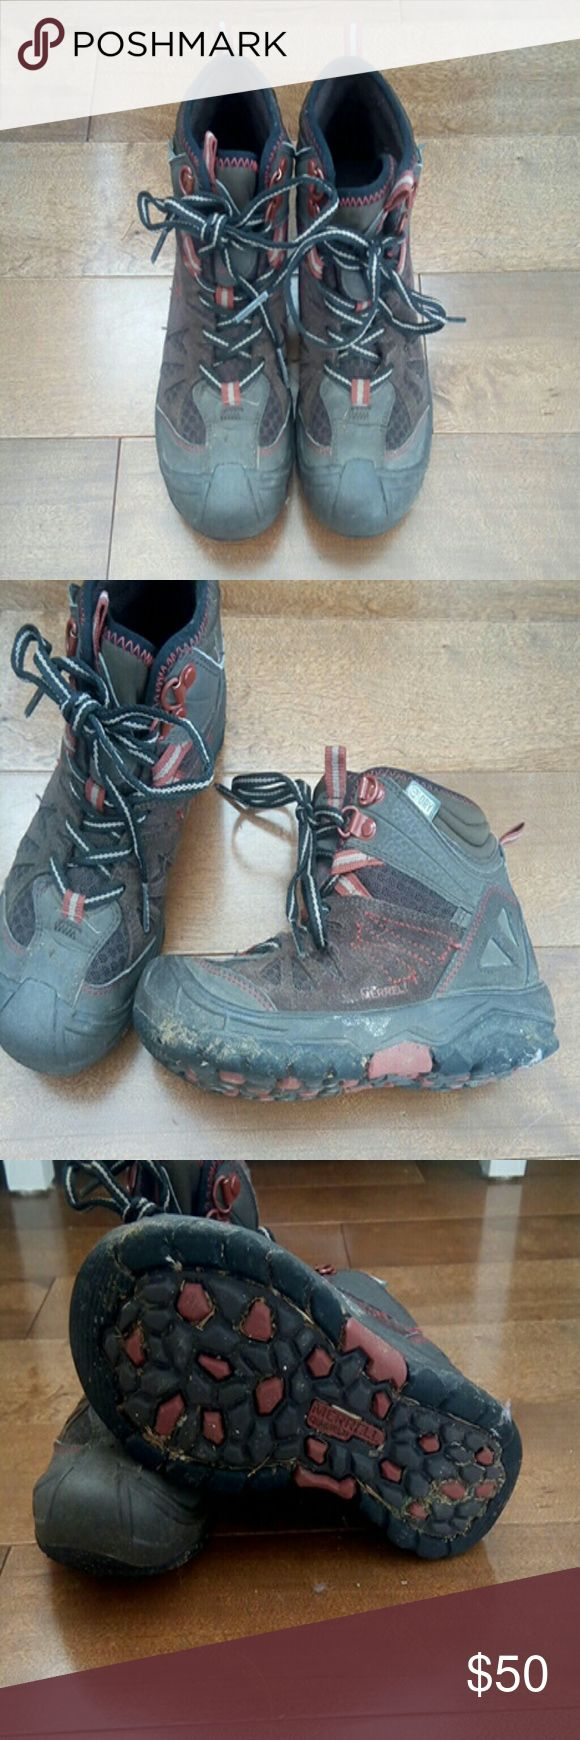 Merrell boys hiking boots Merrell boys hiking boots. Ankle height, laces in tact, tread is still very good condition. Waterproof! Size 13M. Purchased at REI last winter. Great for soggy spring hiking! Merrell Shoes Rain & Snow Boots